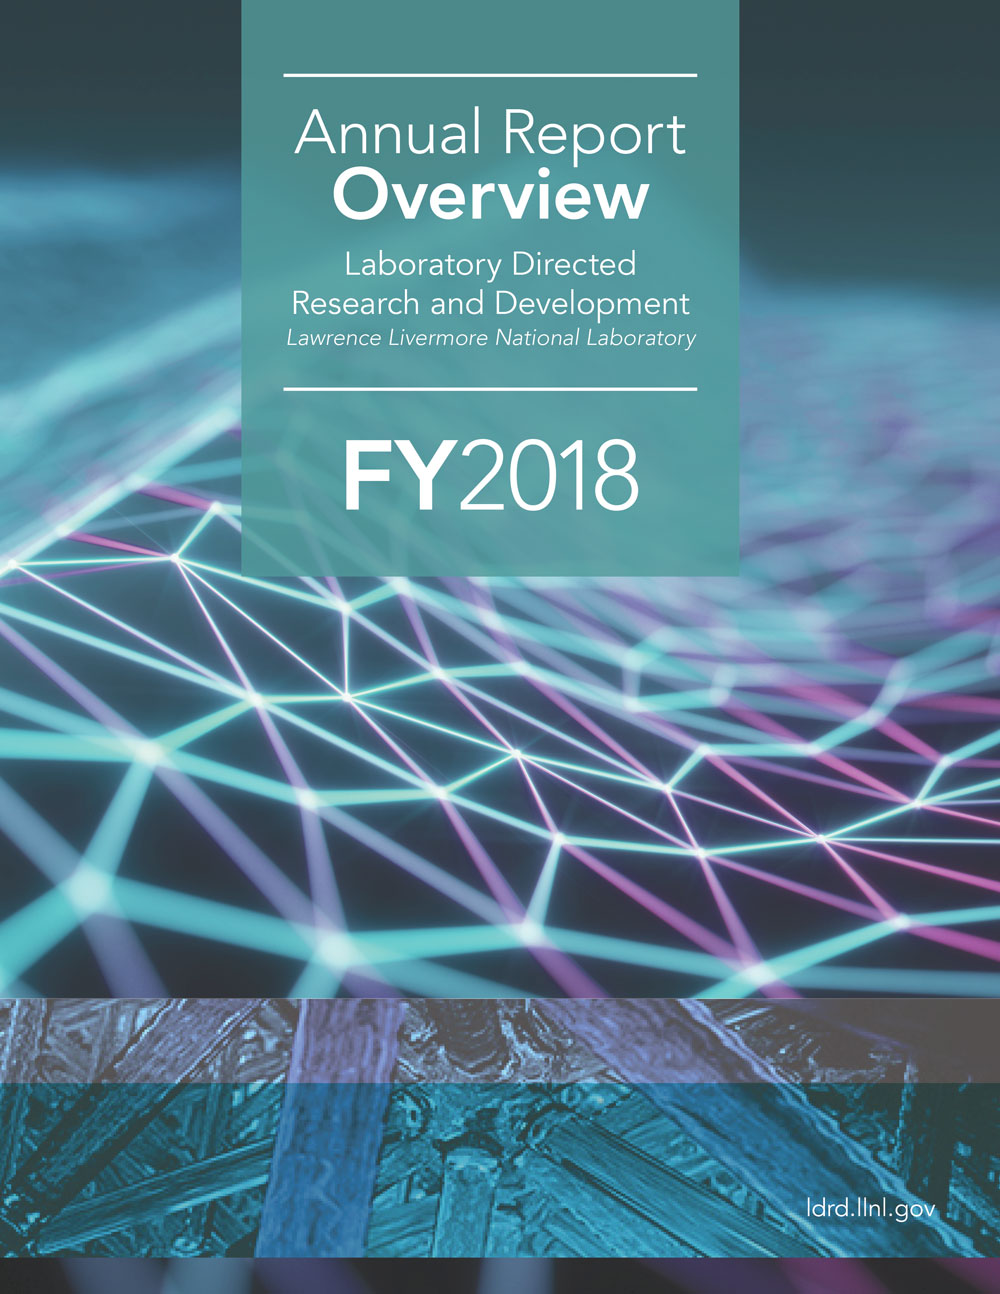 CoverofLLNLFY2018AnnualReport